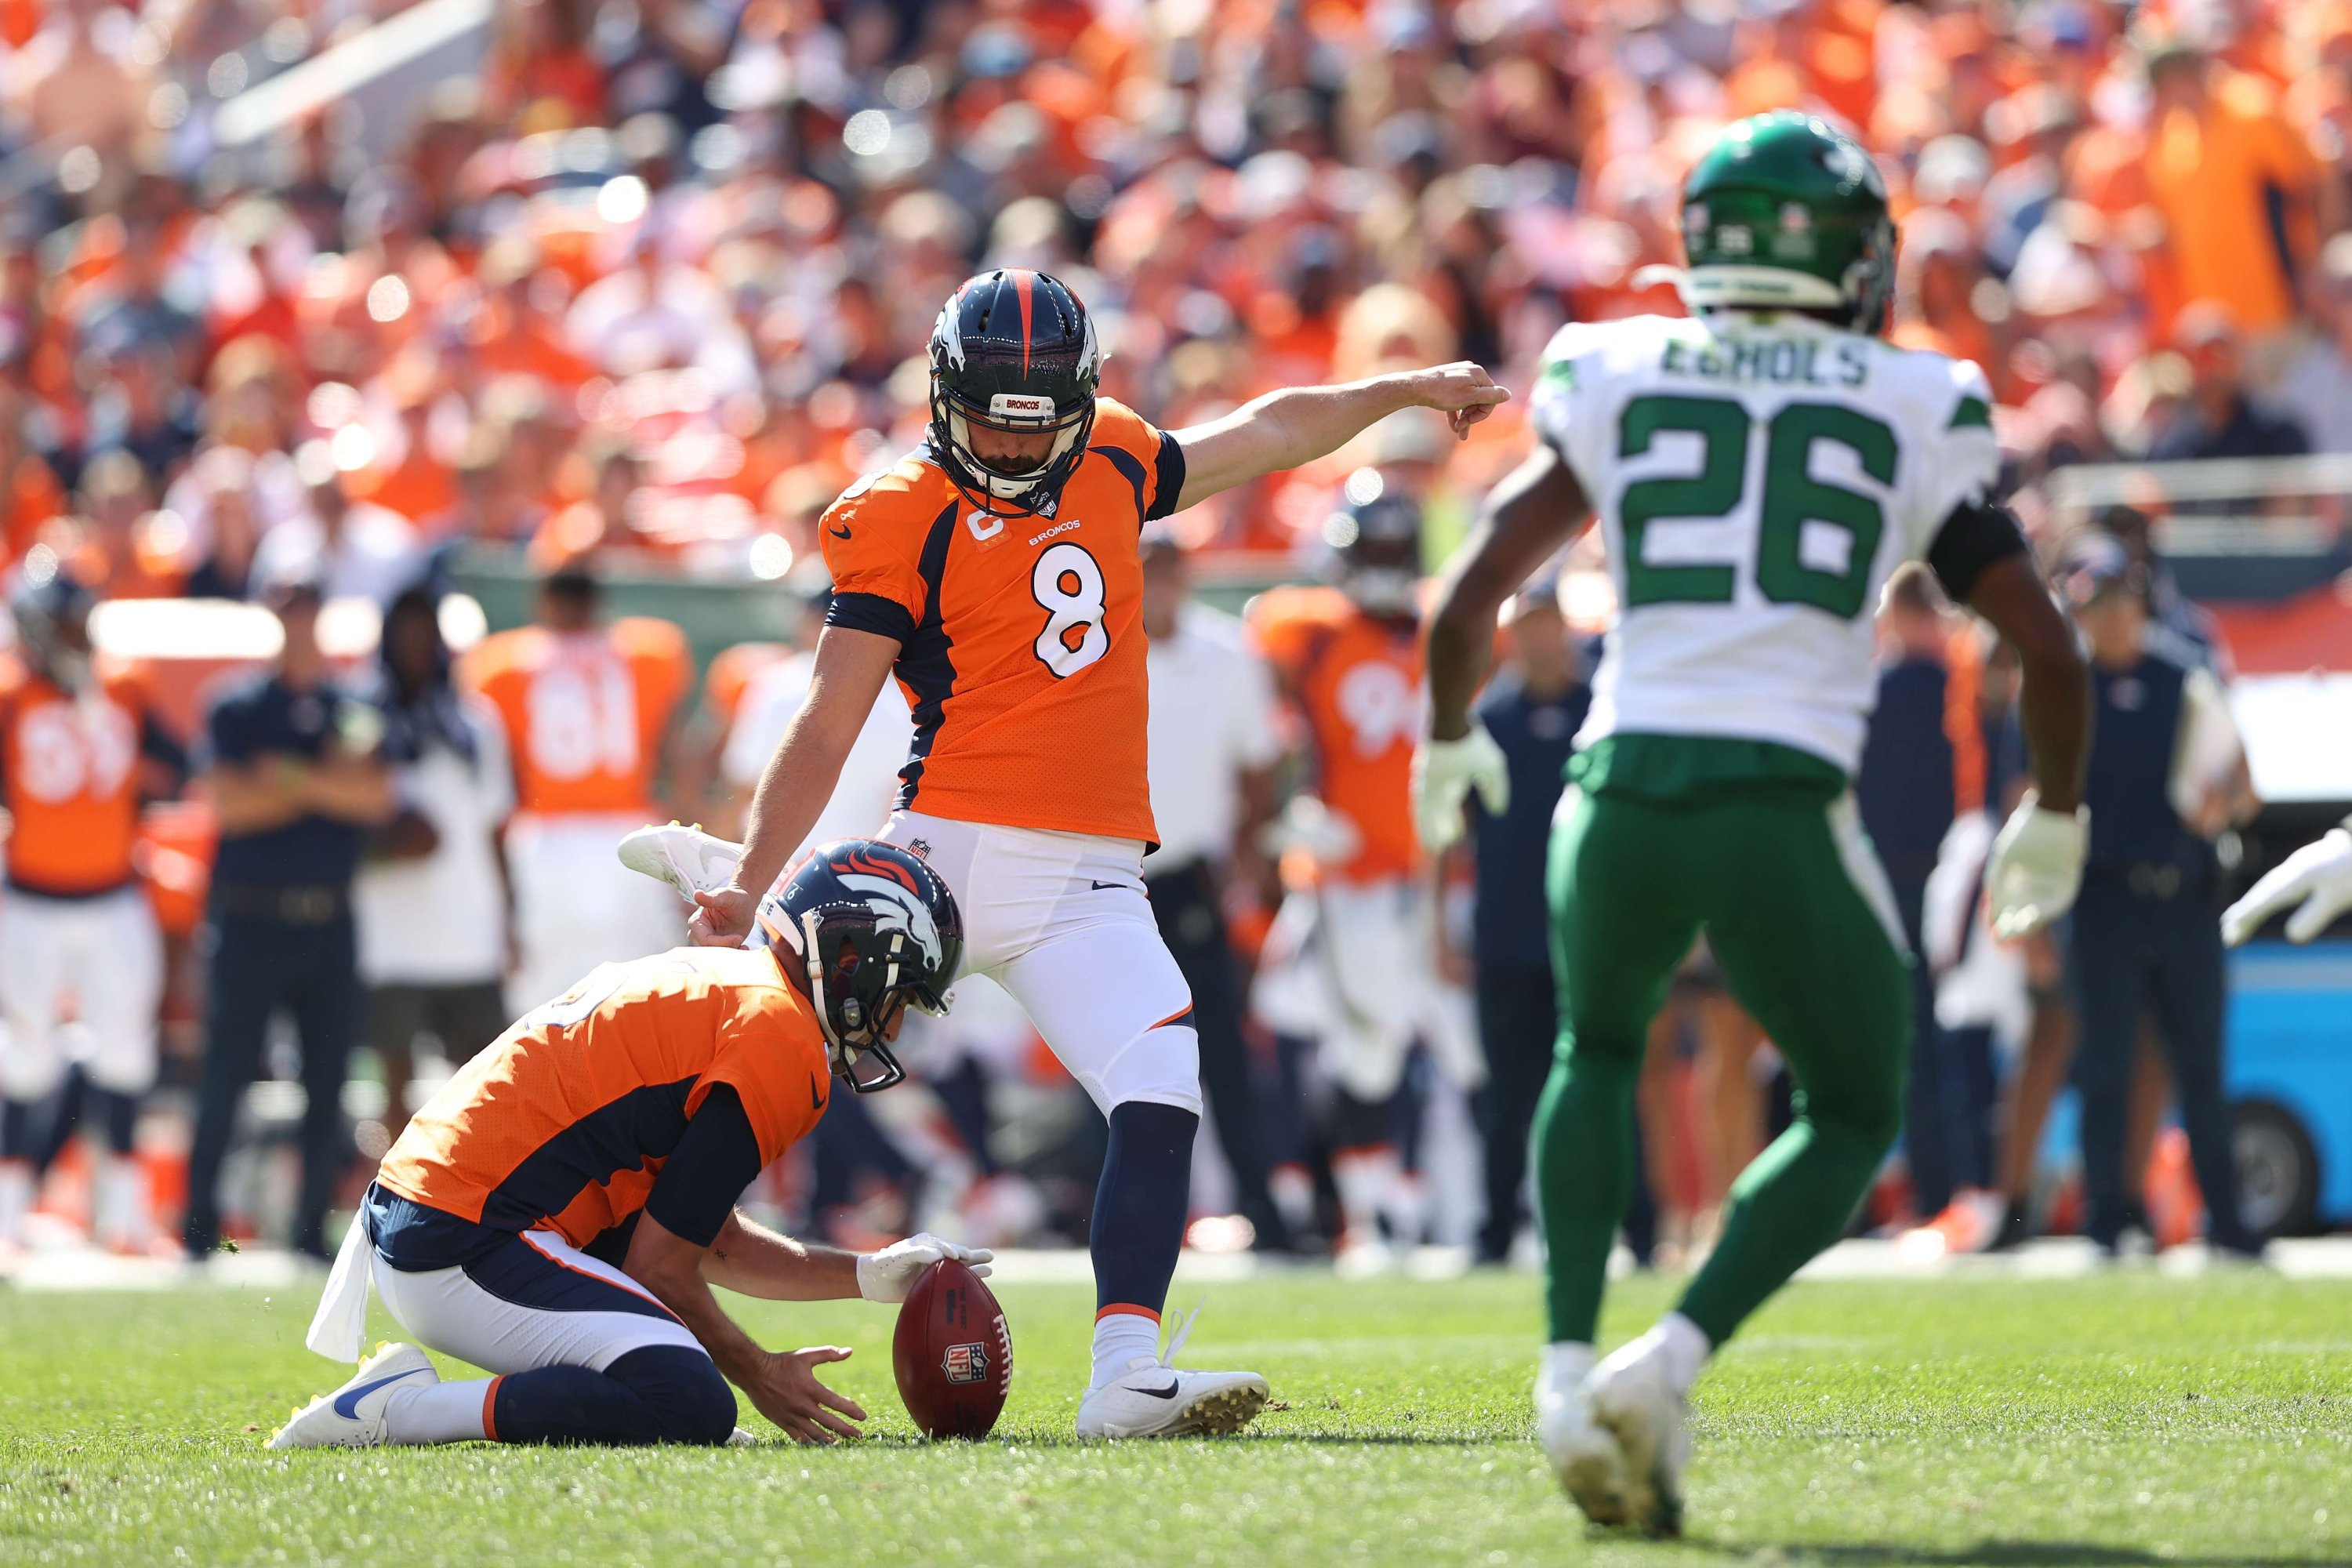 Brandon McManus (8) of the Denver Broncos attempts a field goal against the New York Jets during the game at Empower Field At Mile High, Denver, Colorado, U.S., Sept. 26, 2021. (AFP Photo)